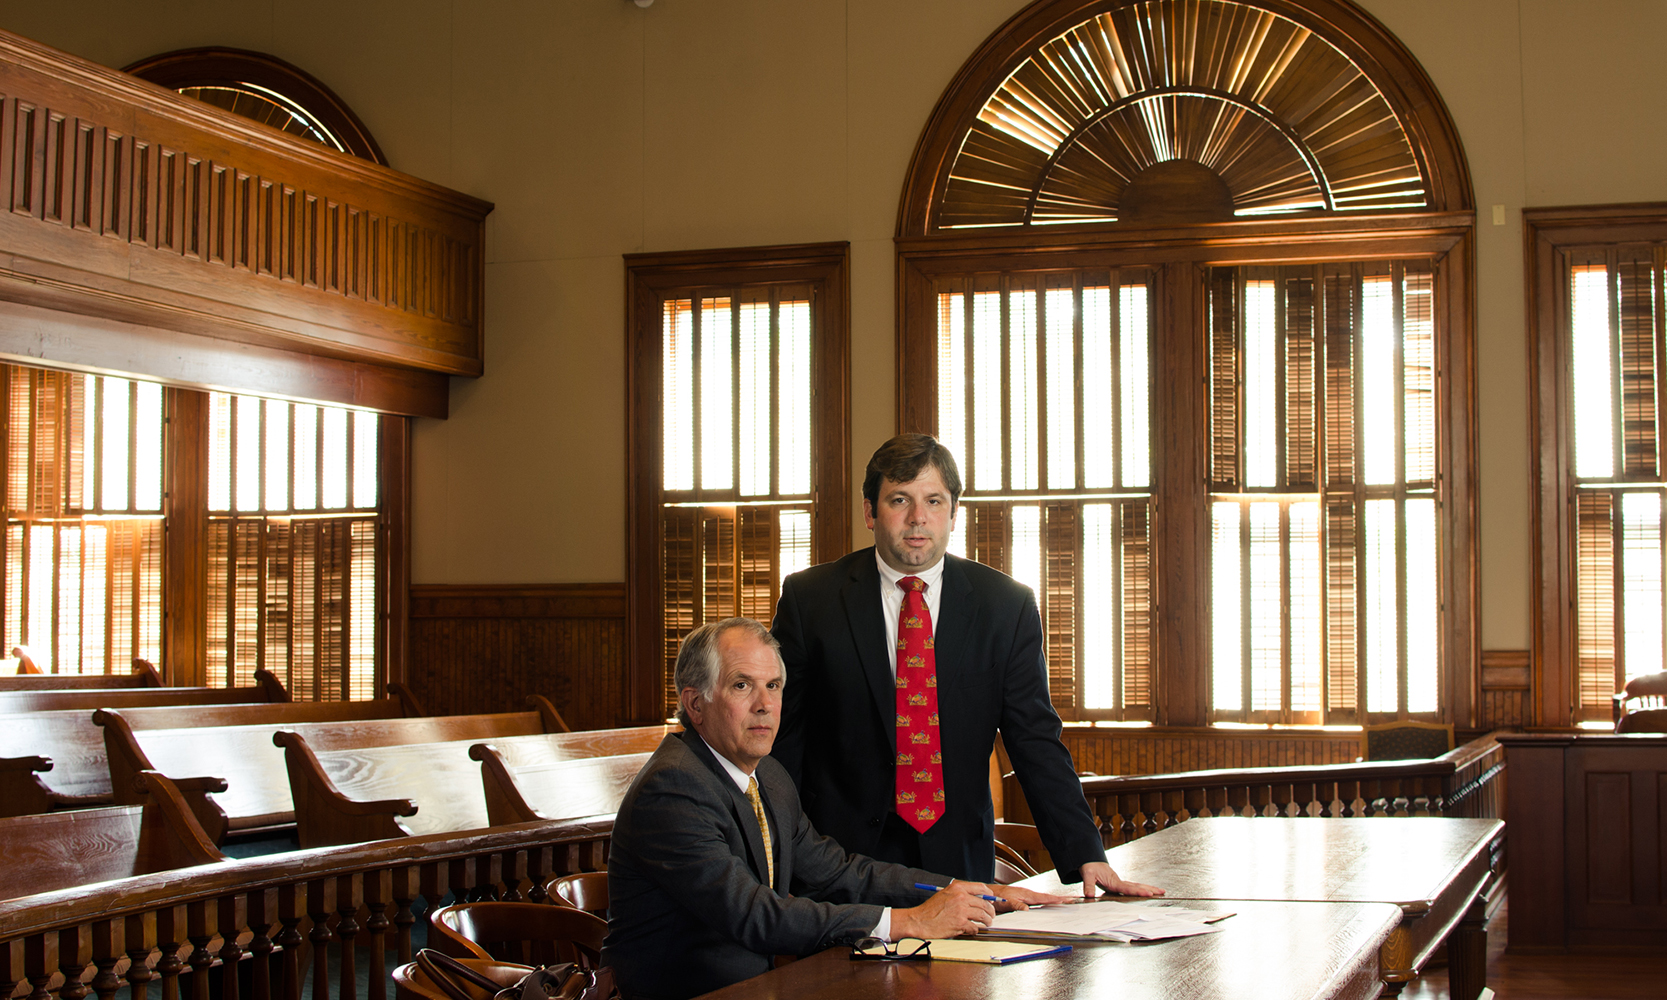 Attorneys Bruce W. Kirbo Jr. and Wheat B. Kirbo III in the courtroom in Bainbridge, GA.